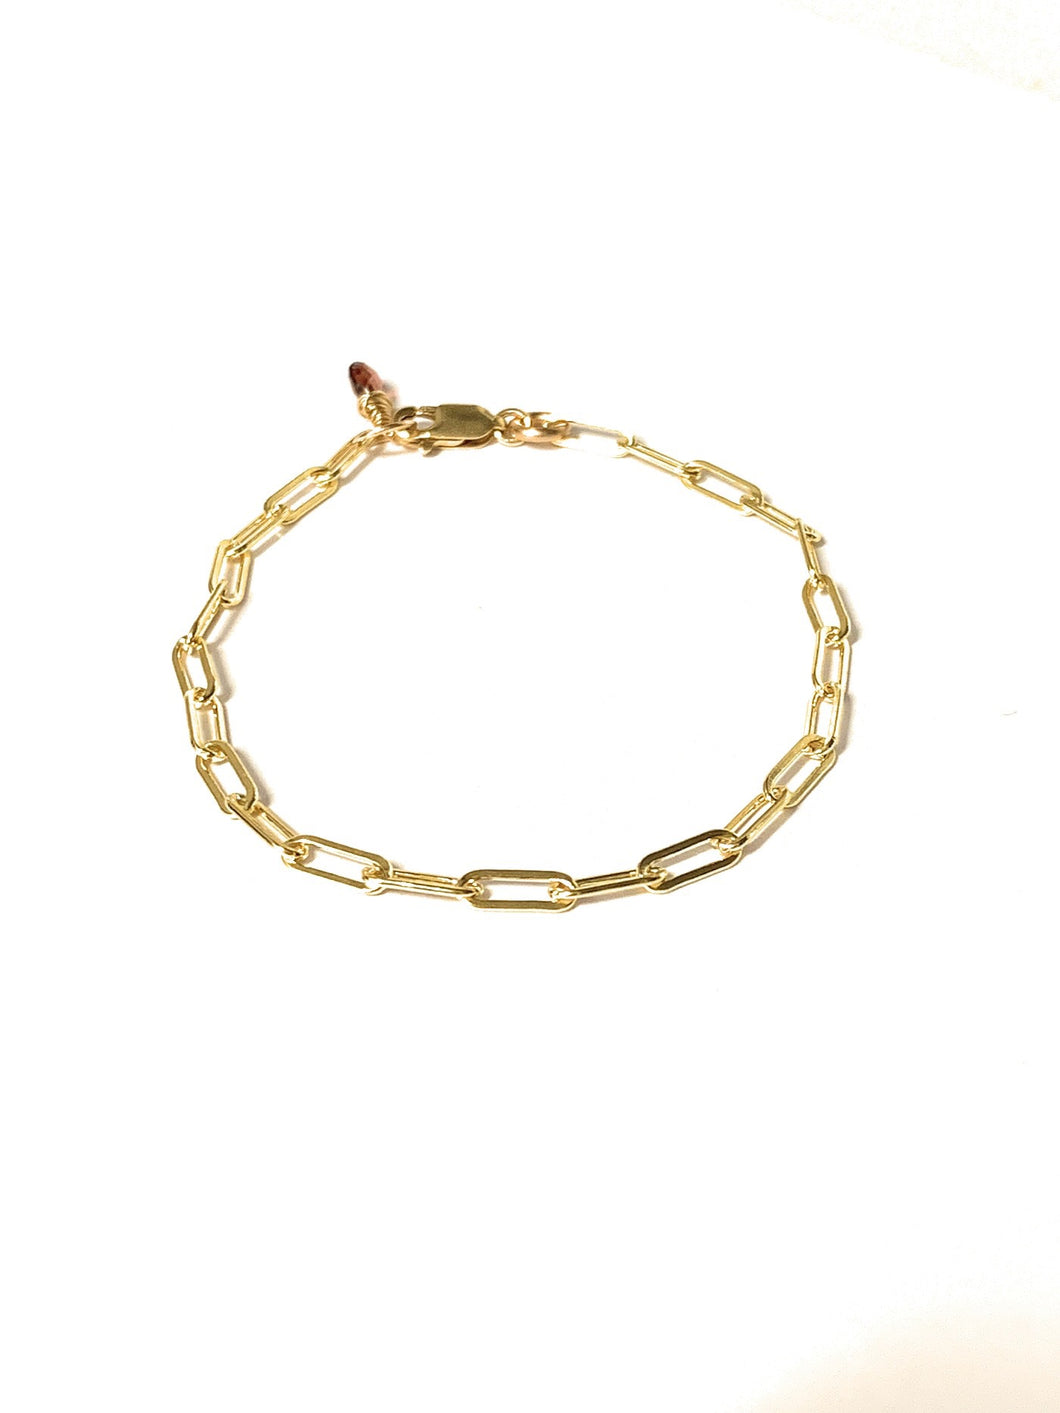 Paperclip Chain Link Gold Bracelet - MiShelli